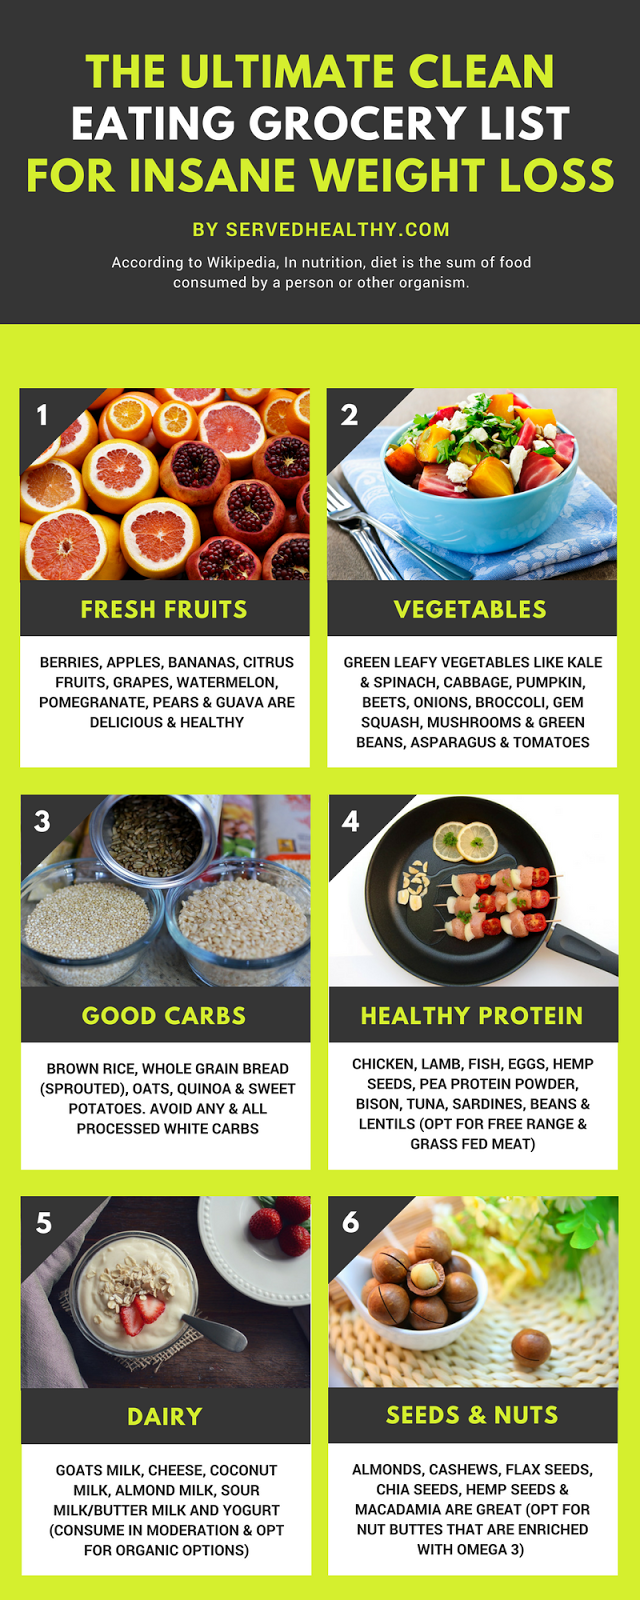 diet, eat clean, clean eating tips, clean eating grocery list, grocery list for clean eating, healthy foods to buy, what foods are healthy, diet